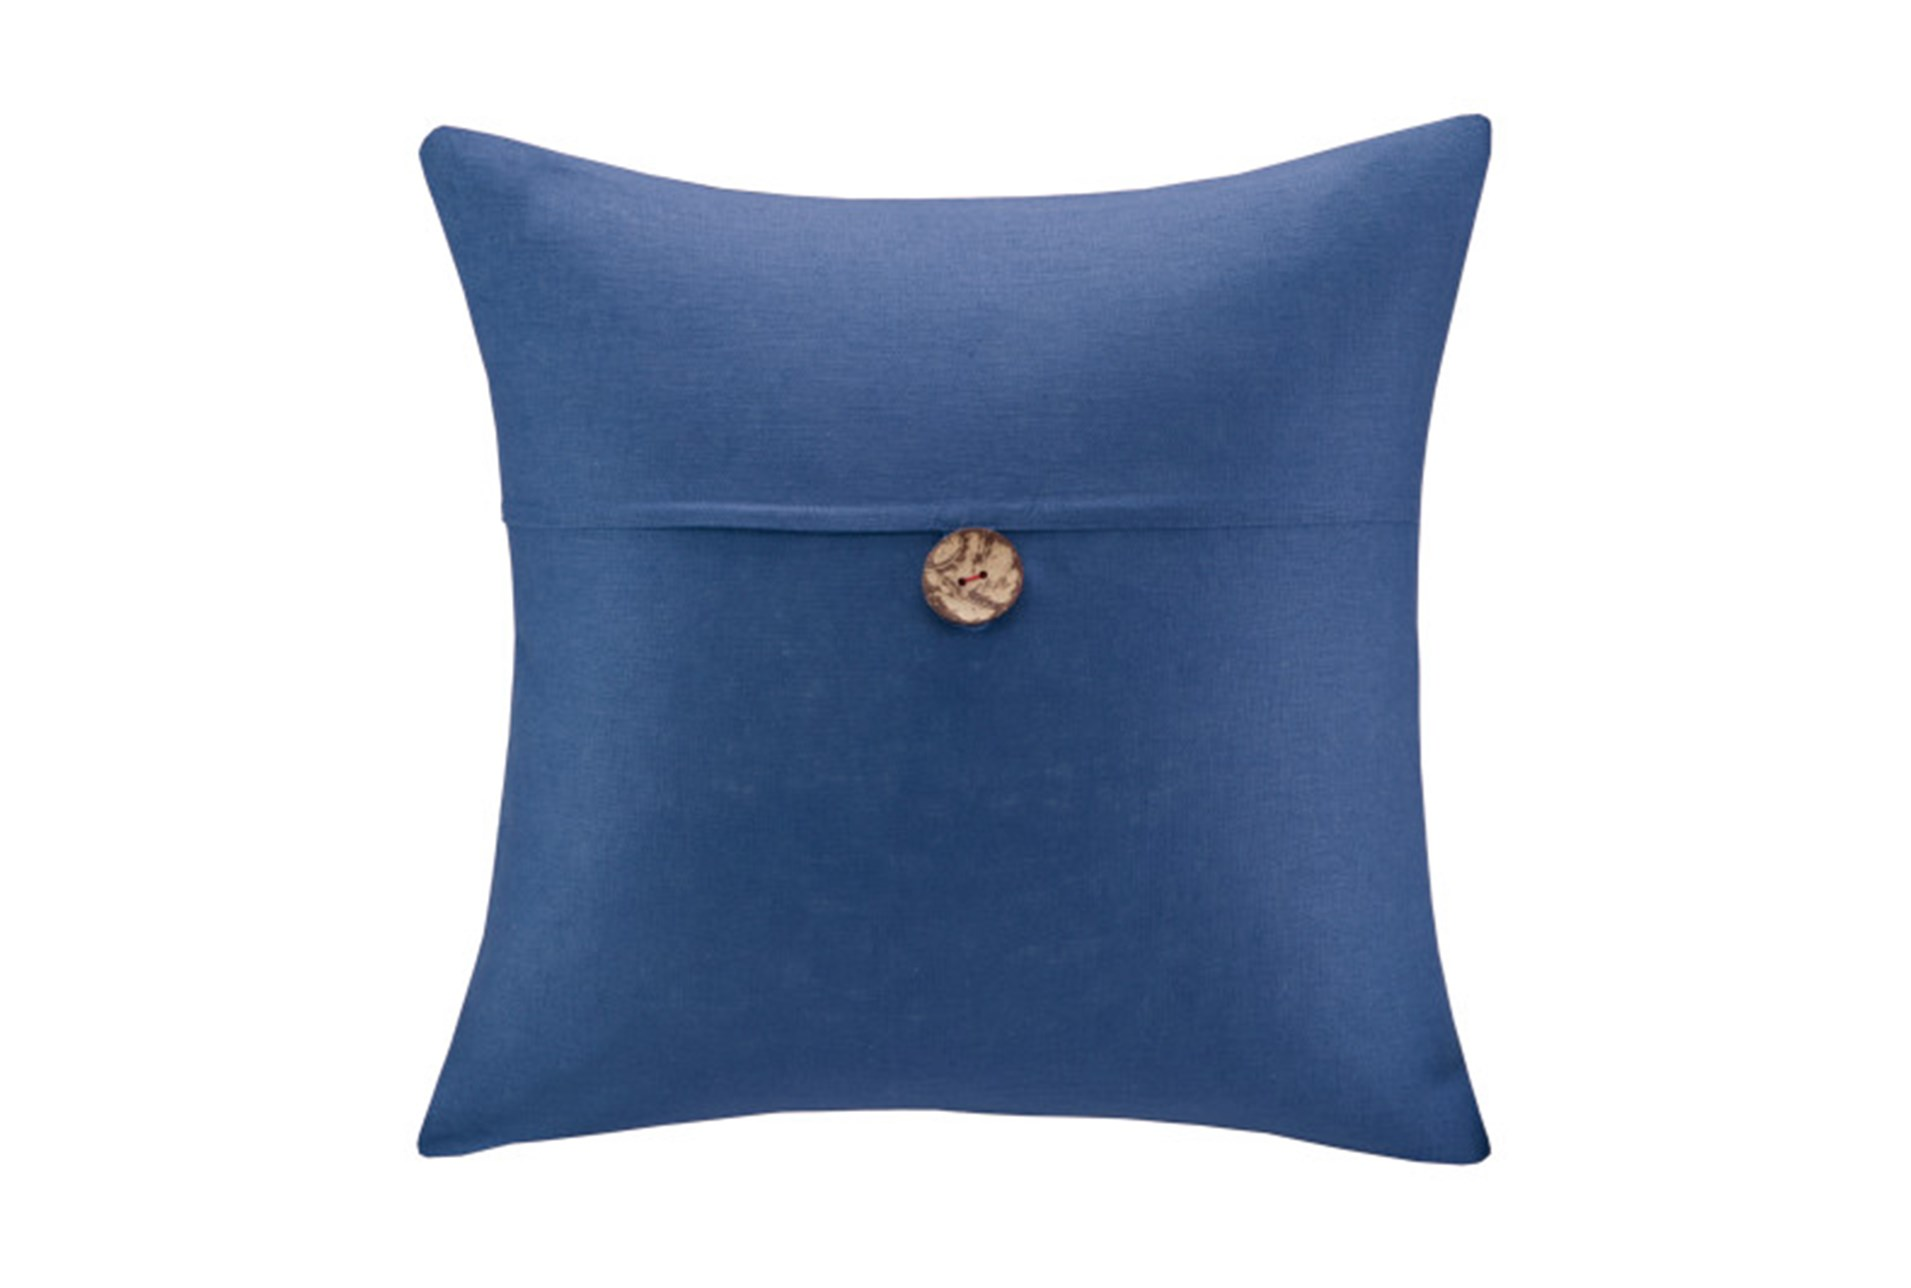 Throw Pillows With Big Buttons : Accent Pillow-Linen Button Navy 20X20 Living Spaces